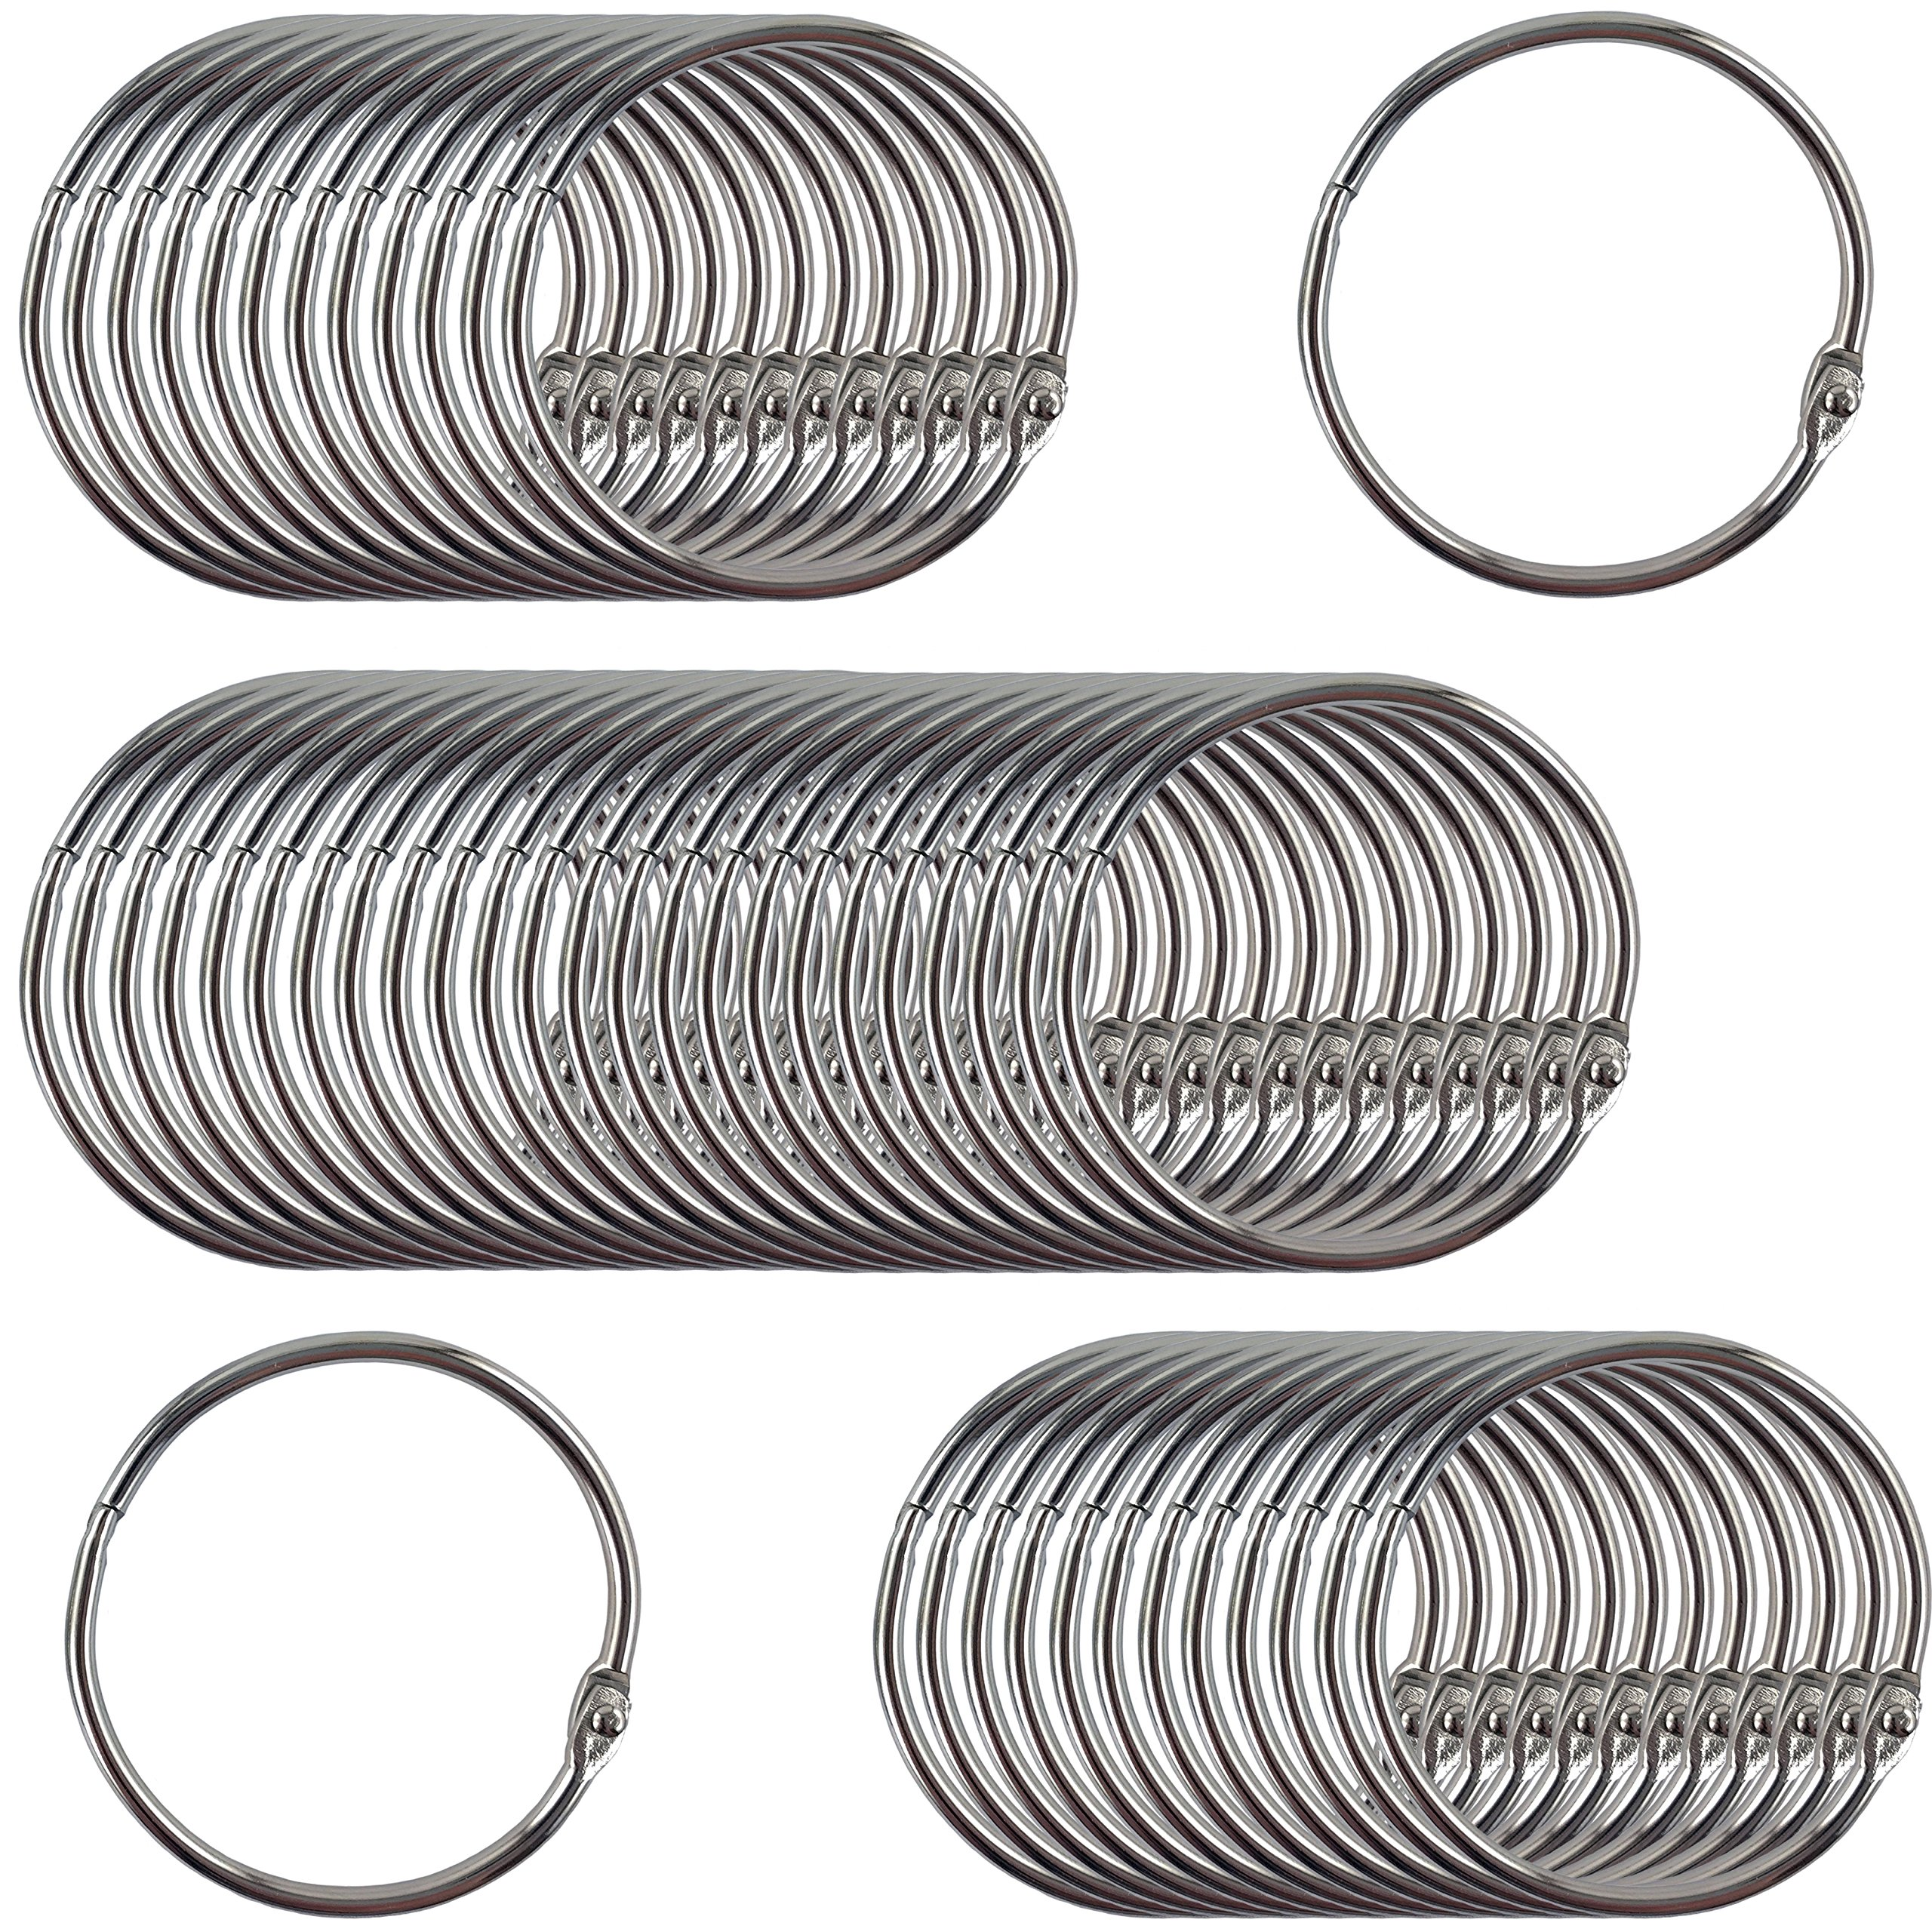 Clipco Book Rings Large 2-Inch Nickel Plated (50-Pack) by Clipco